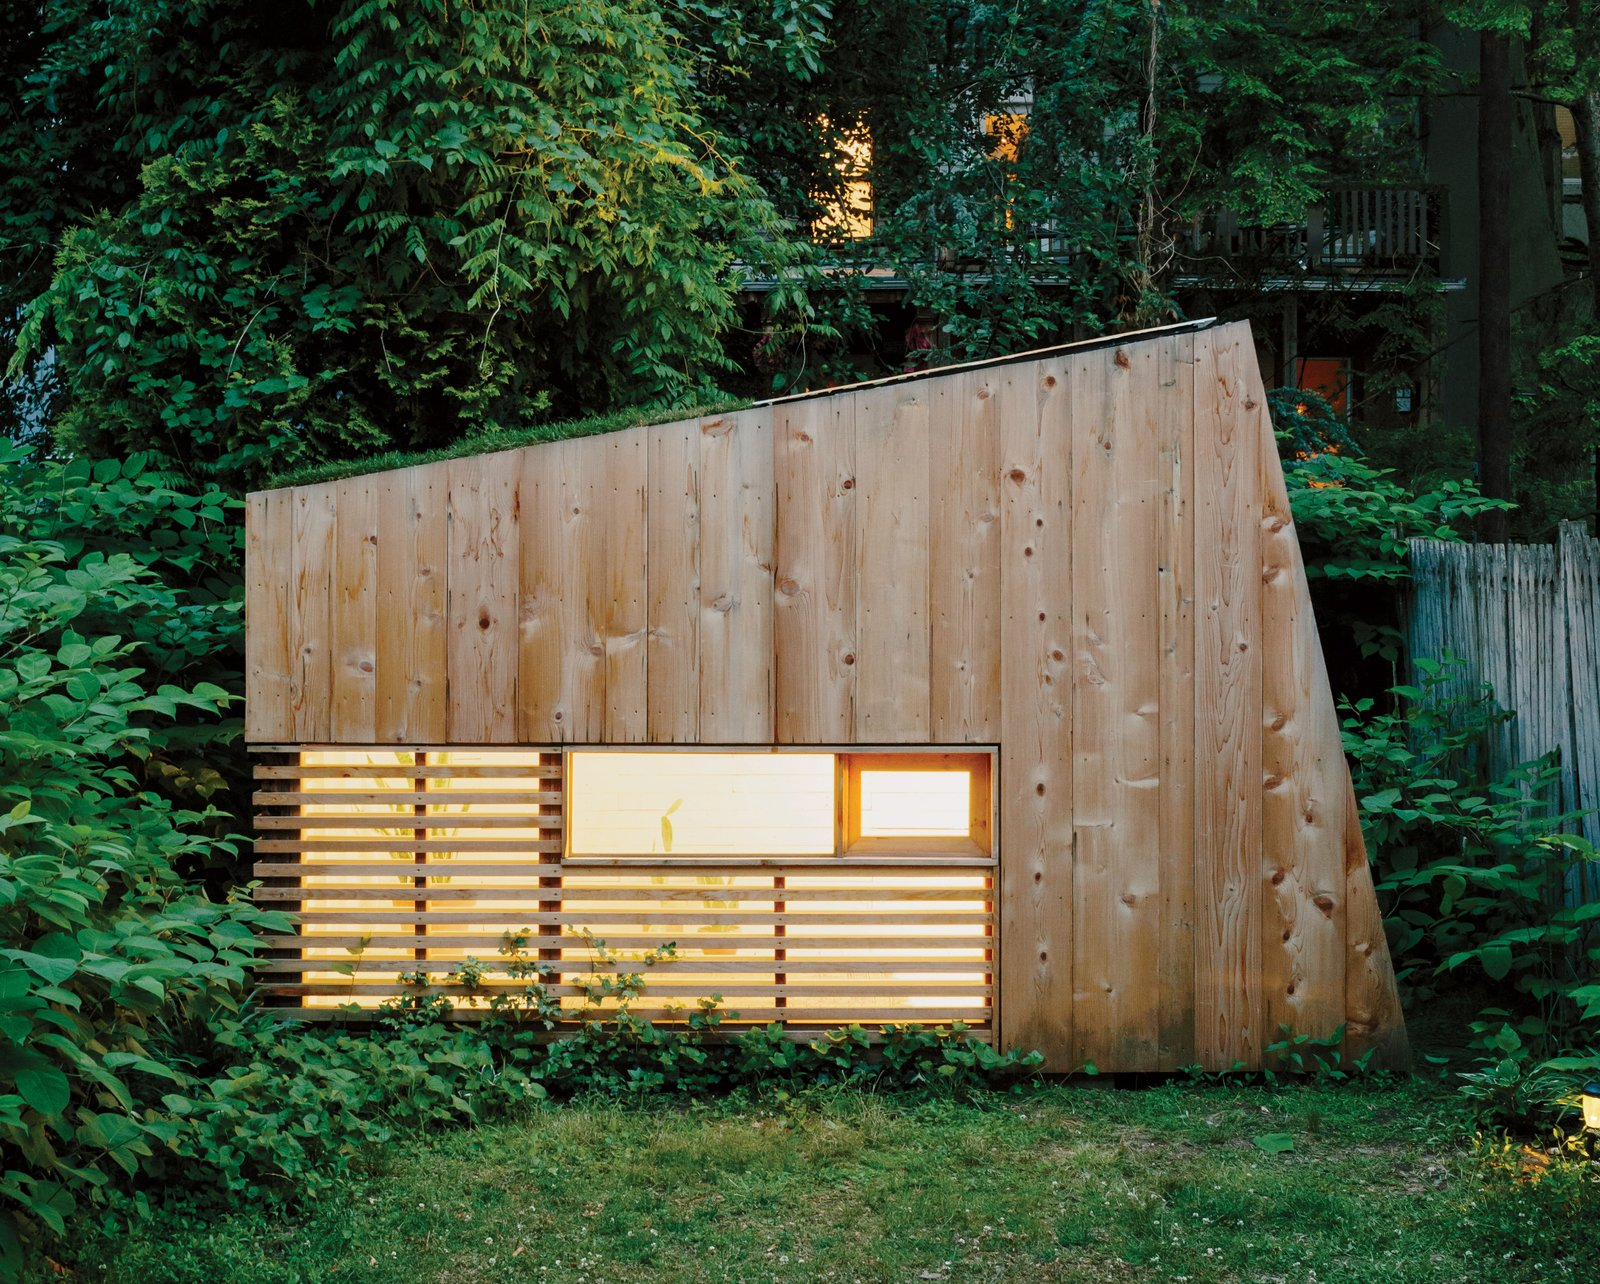 Photo 1 of 6 in An Architect Builds His Own Backyard Oasis From Salvaged Materials